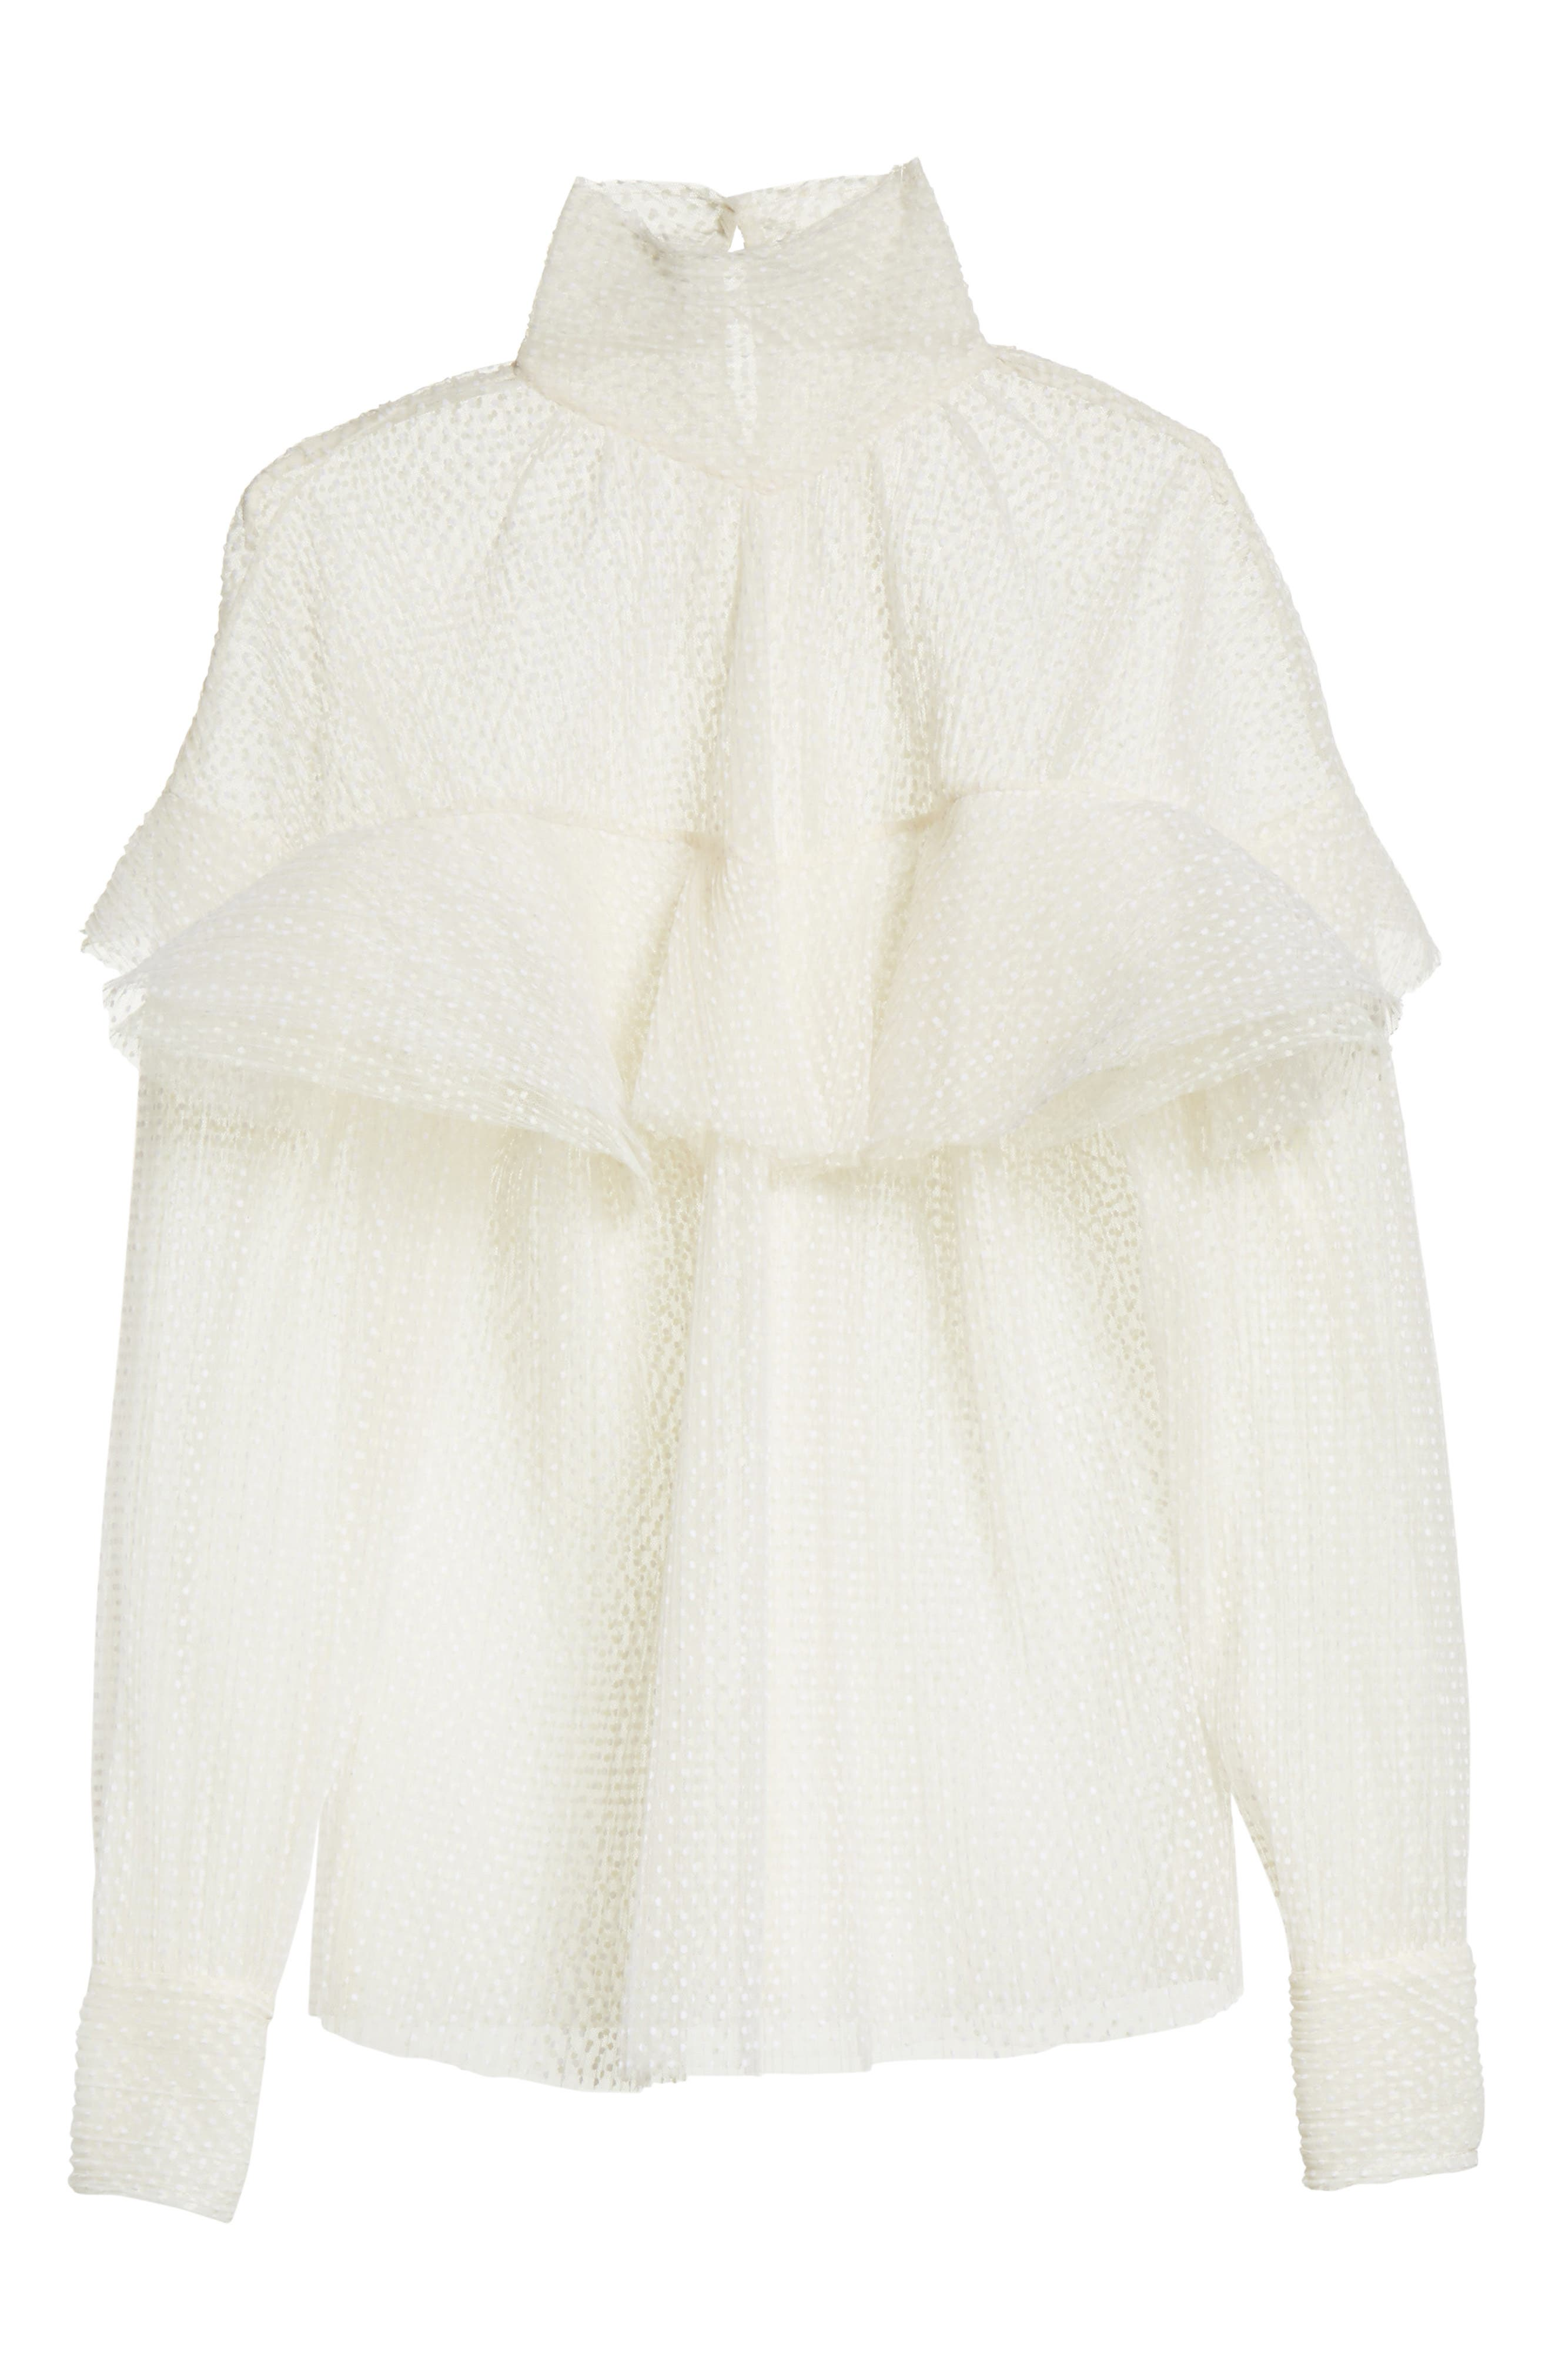 A.W.A.K.E Frill Double Layered Tulle Top,                             Alternate thumbnail 6, color,                             Cream